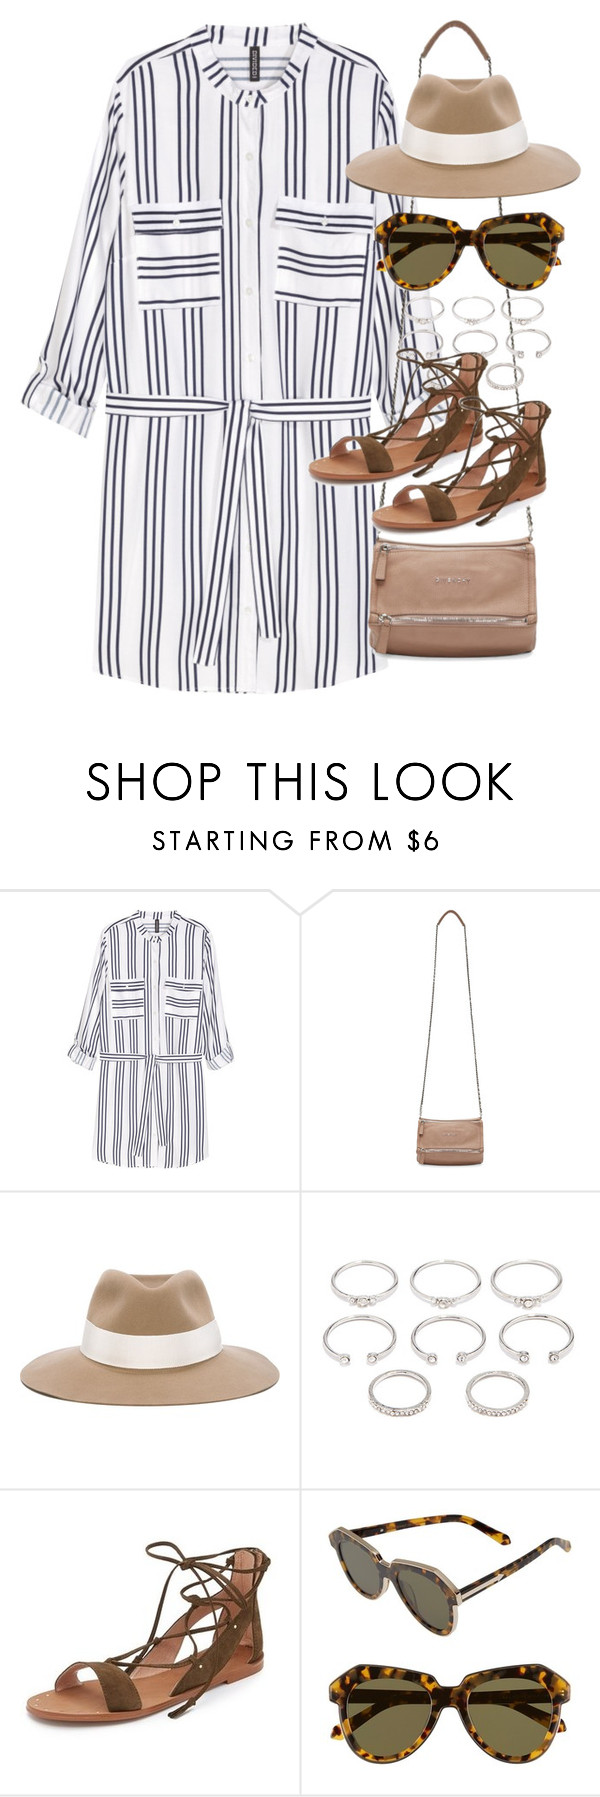 """""""Outfit with a shirt dress"""" by ferned ❤ liked on Polyvore featuring H&M, Givenchy, rag & bone, Forever 21, Madewell and Karen Walker"""